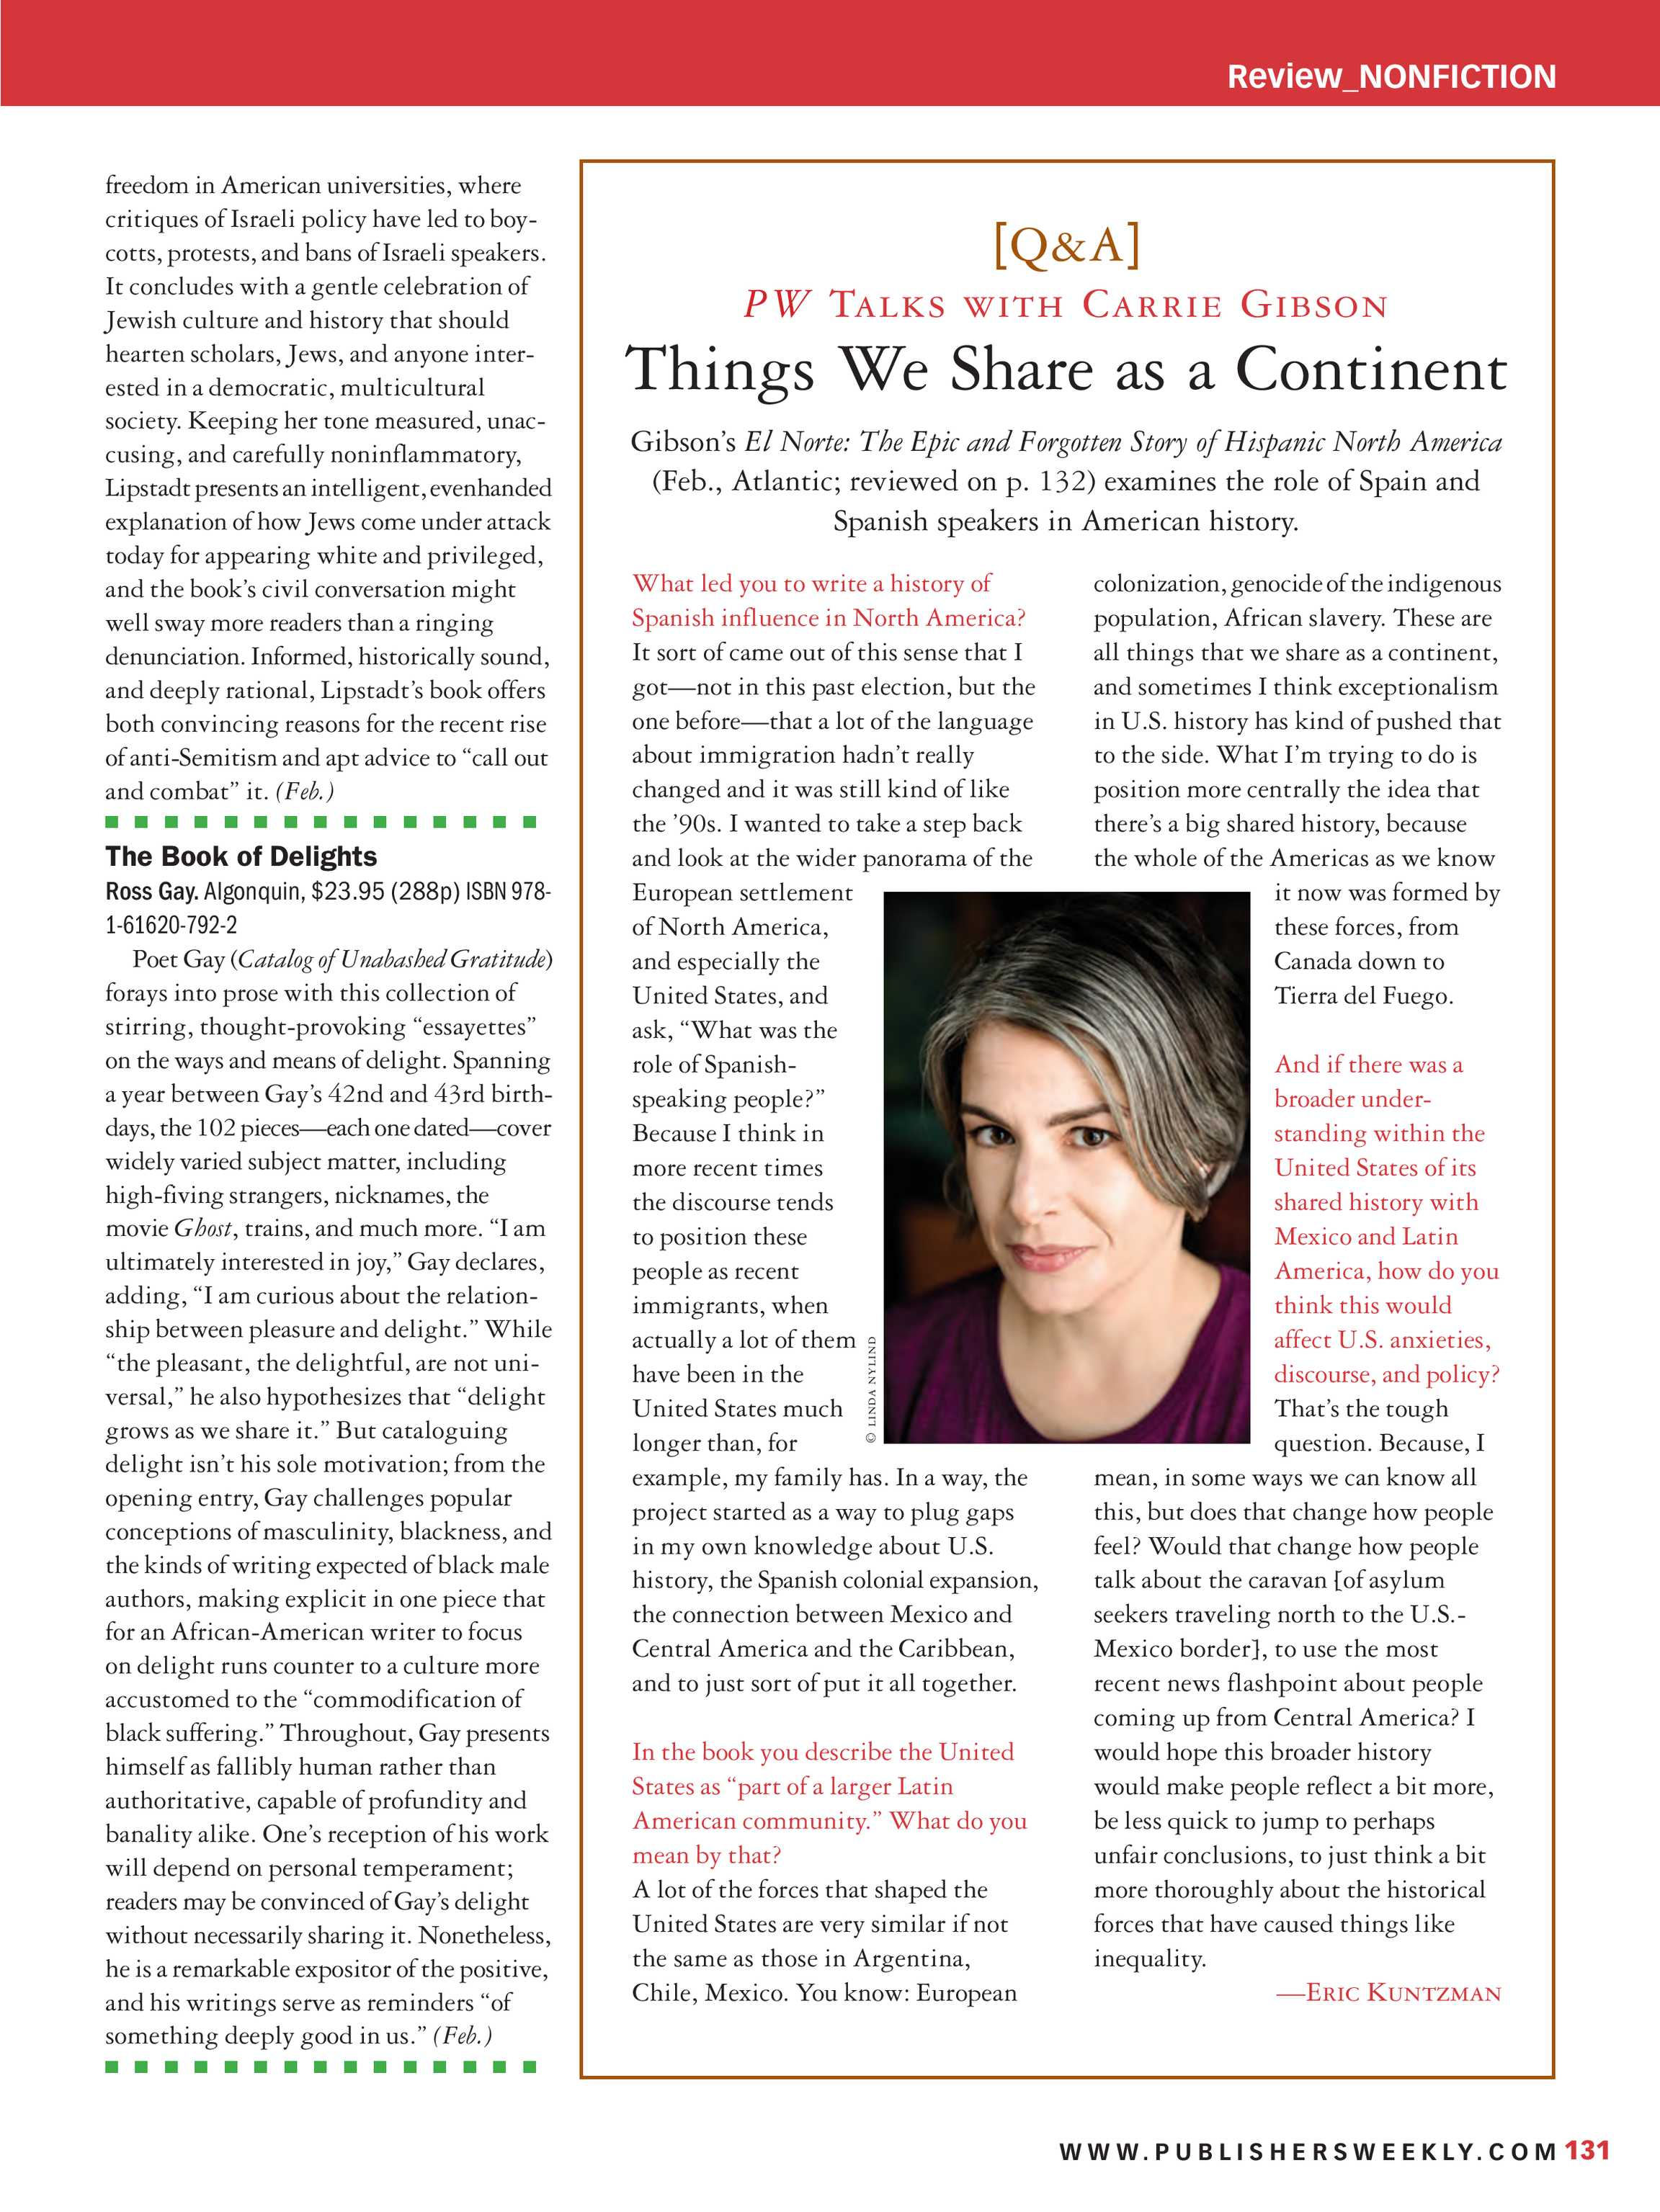 Publishers Weekly - December 17, 2018 - page 131